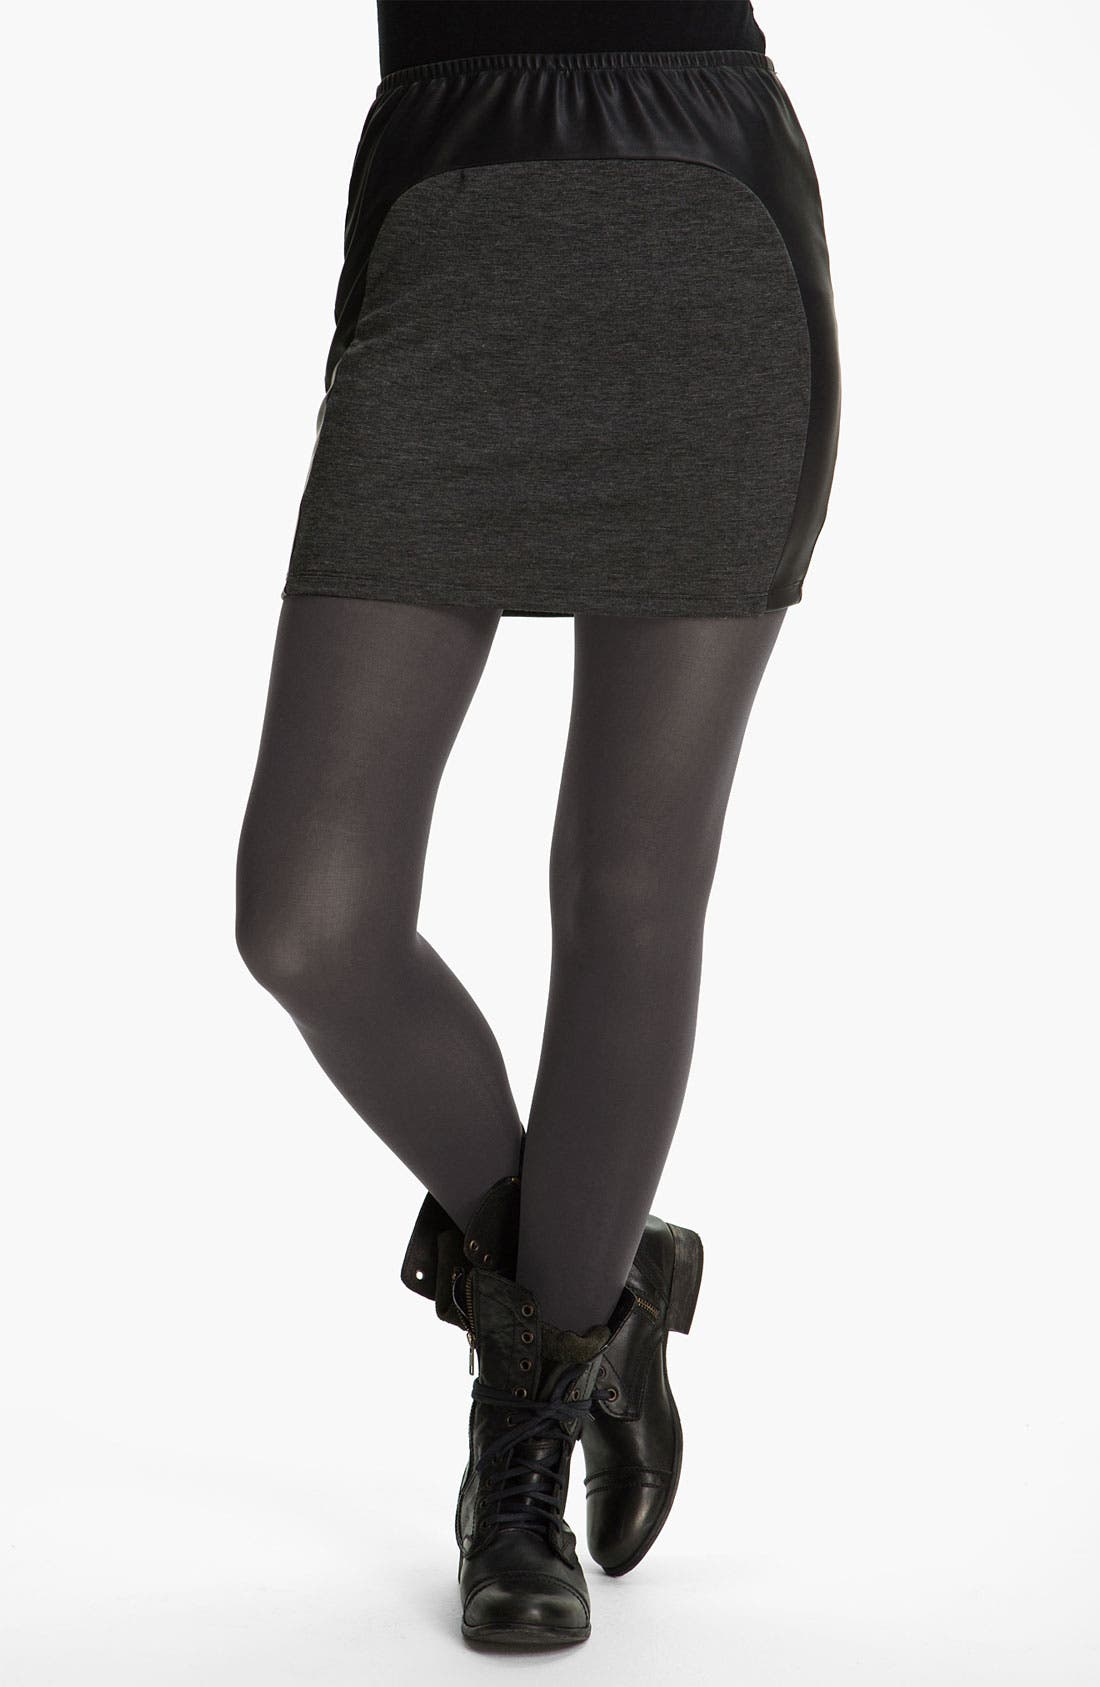 Alternate Image 1 Selected - Frenchi® Opaque Tights (Juniors)